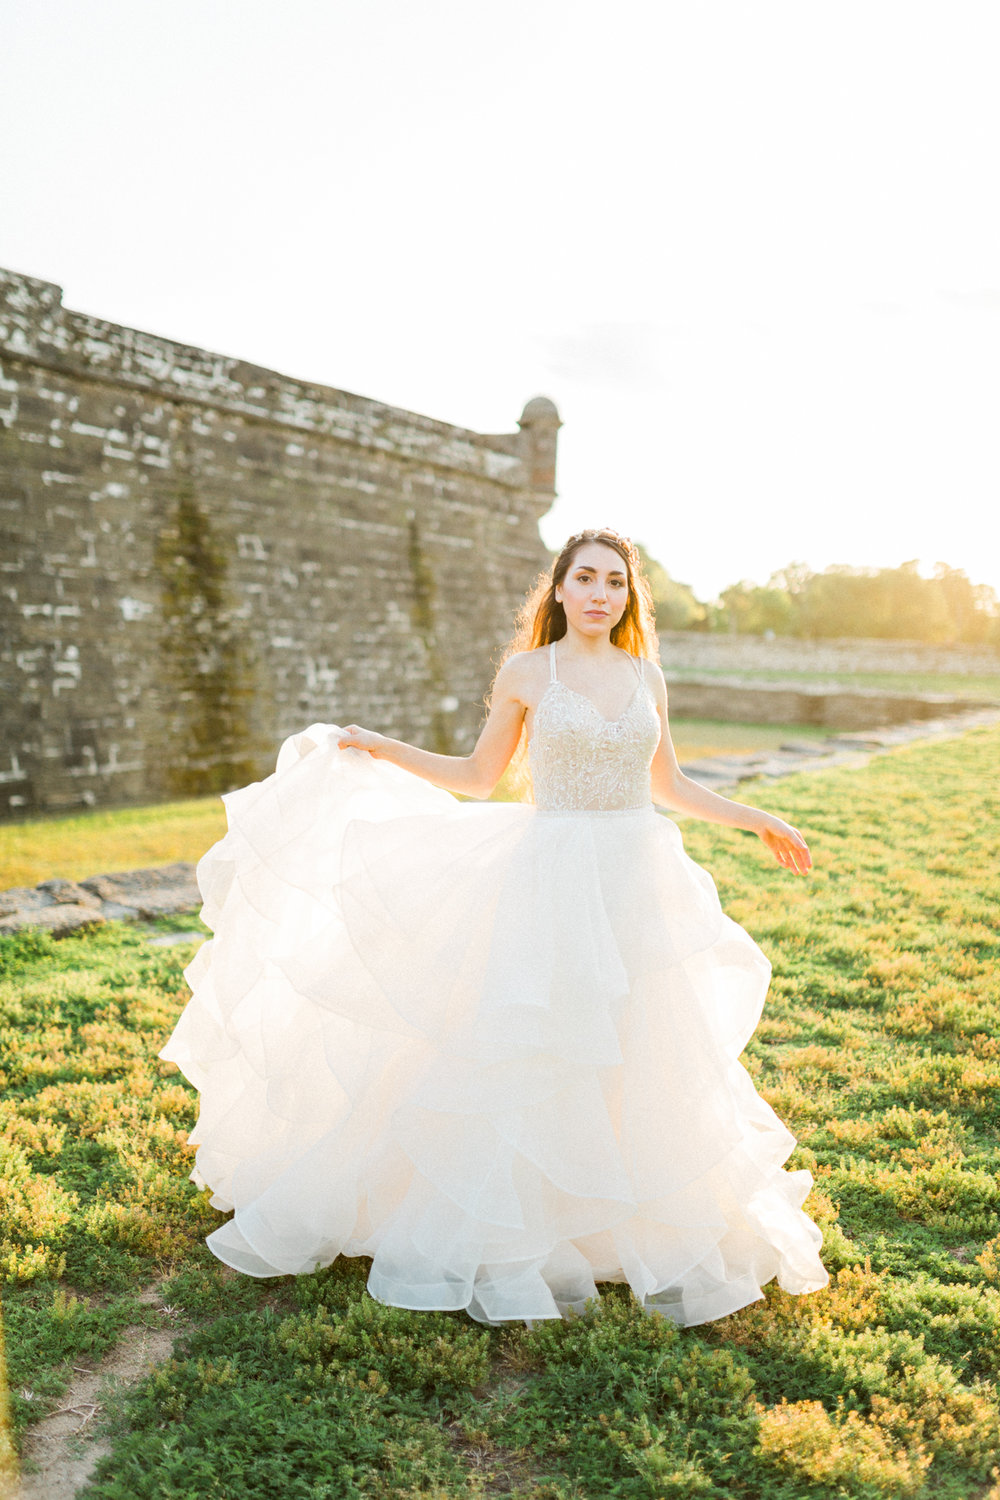 St. augustine, castillo de san marcos styled wedding bridal photo